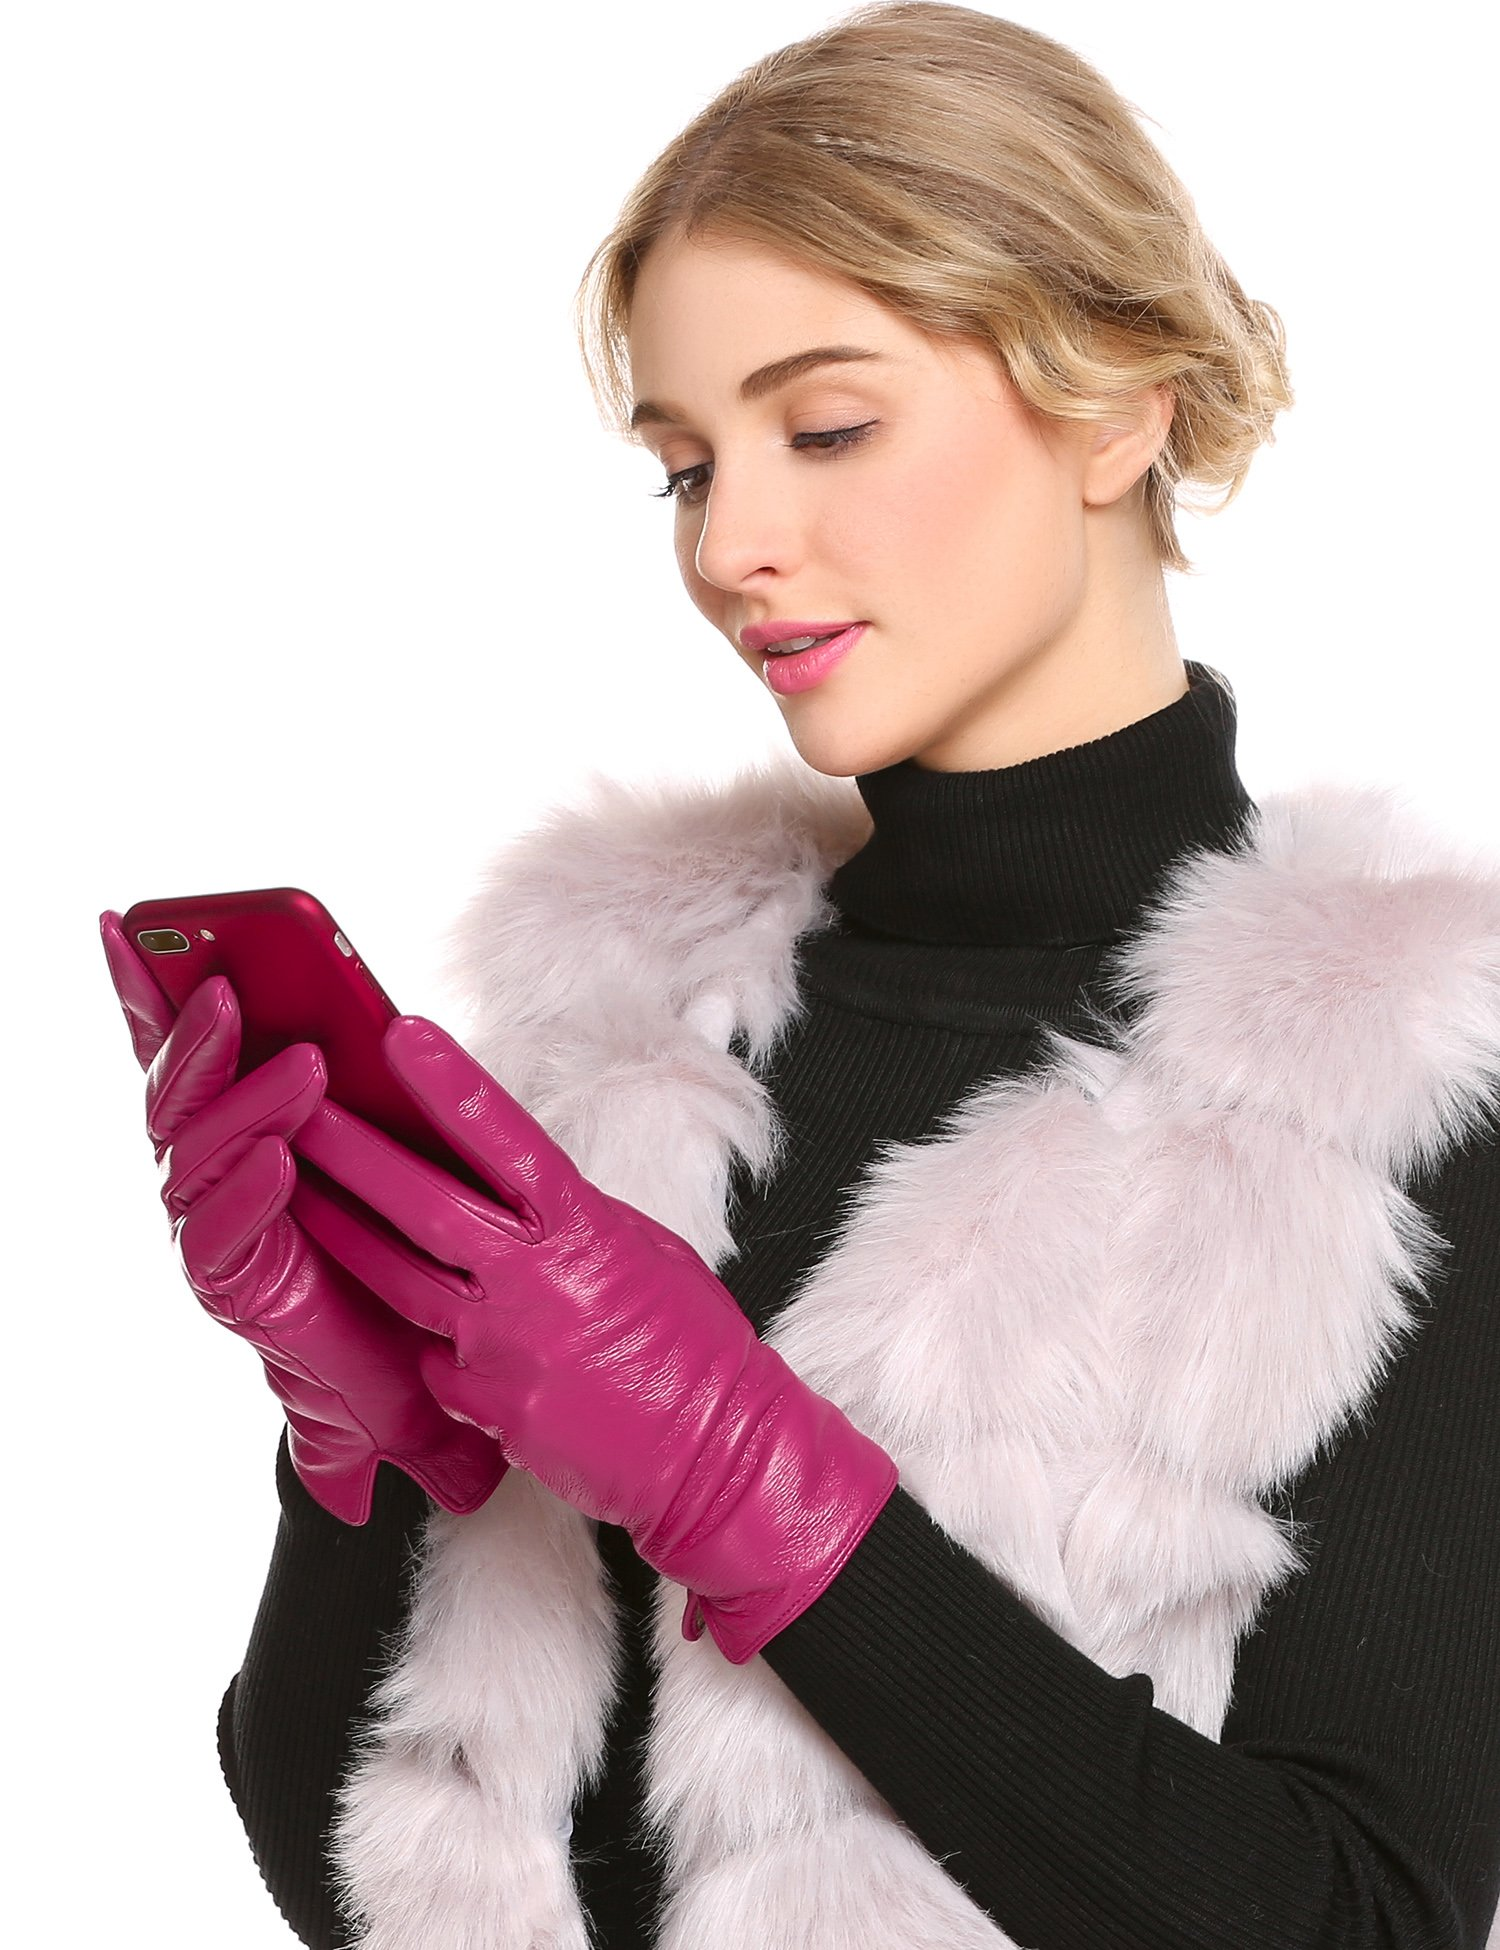 CHIGANT Women Genuine Leather Gloves with Knitted Cashmere Lining (Rose, M)